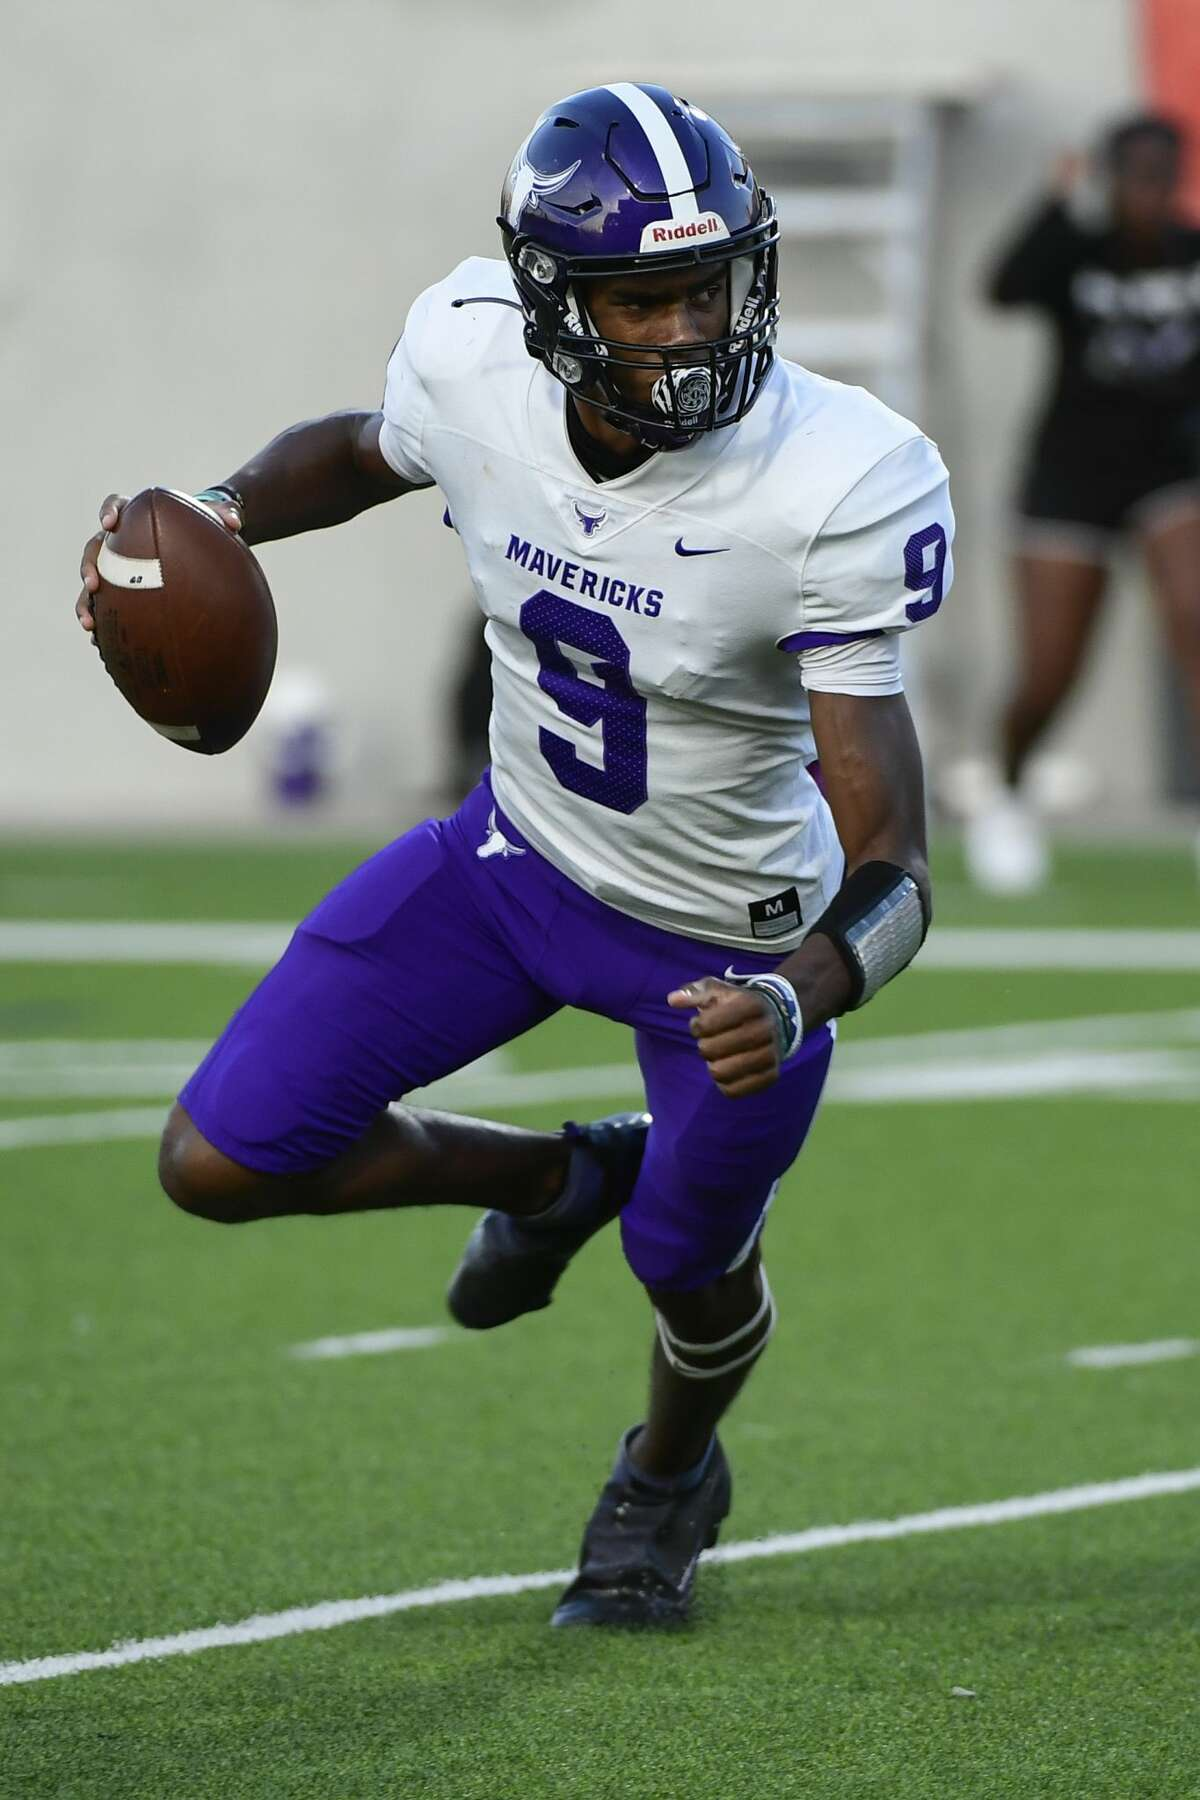 Morton Ranch's Josh Johnson (9) attempts to pass the ball during a District 19-6A high school football game at Legacy Stadium on Friday, Oct. 8, 2021, in Katy, Texas.